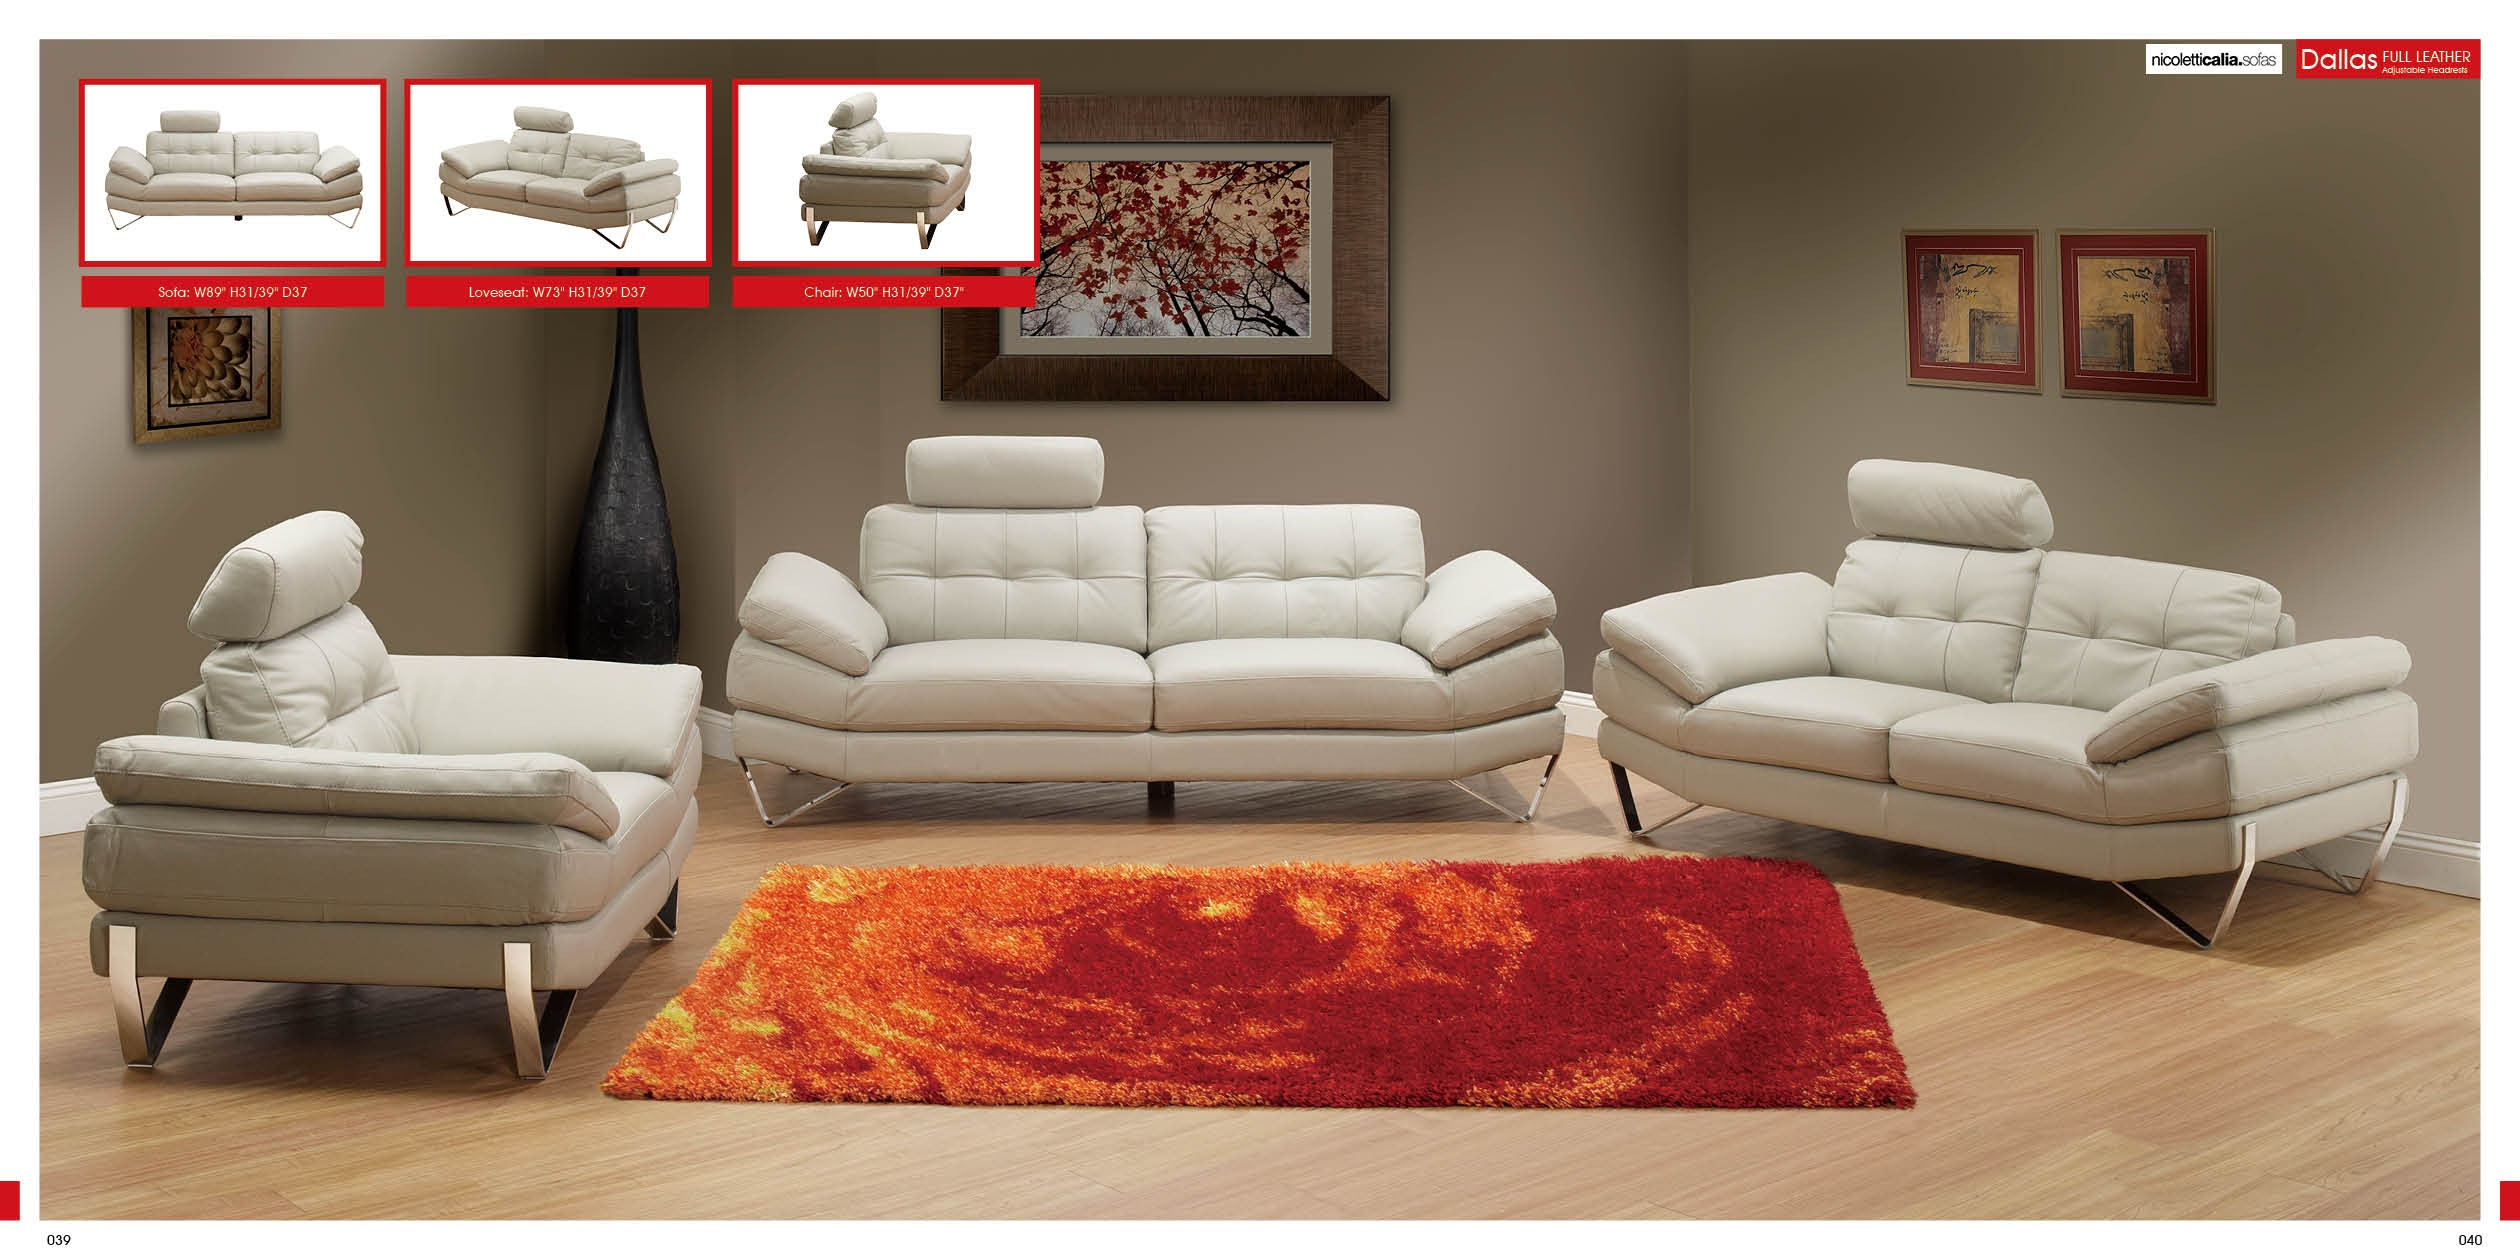 Dallas Sofa Bed By ESF from NOVA interiors contemporary